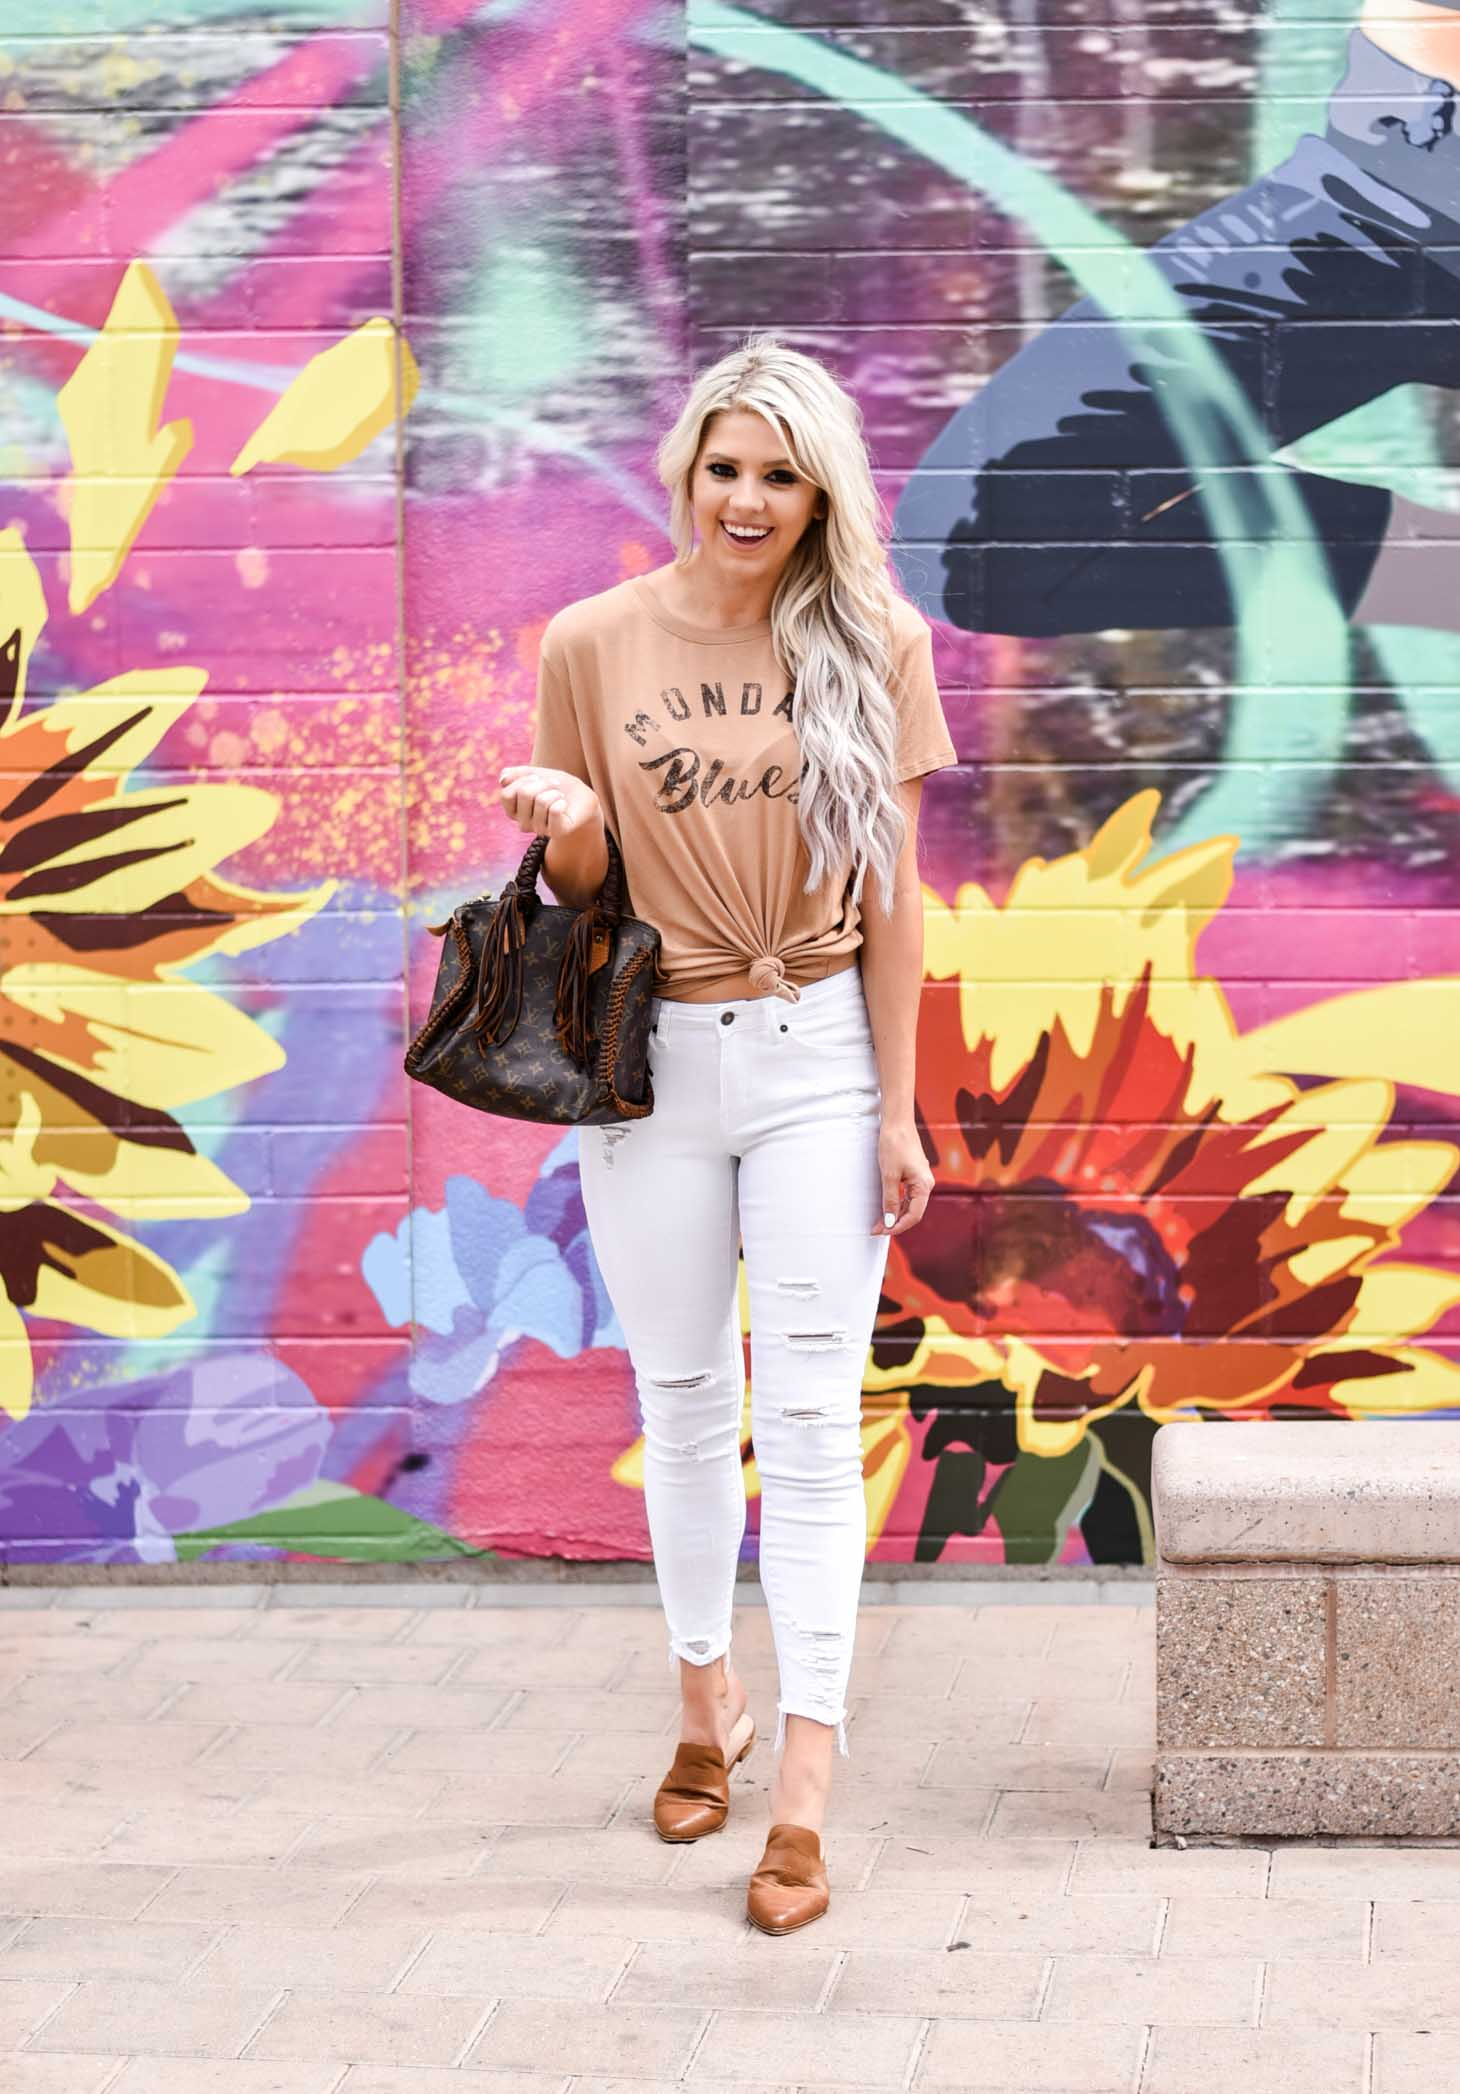 Erin Elizabeth of Wink and a Twirl shares this Vici Dolls Collection Monday Blues tee and white pants